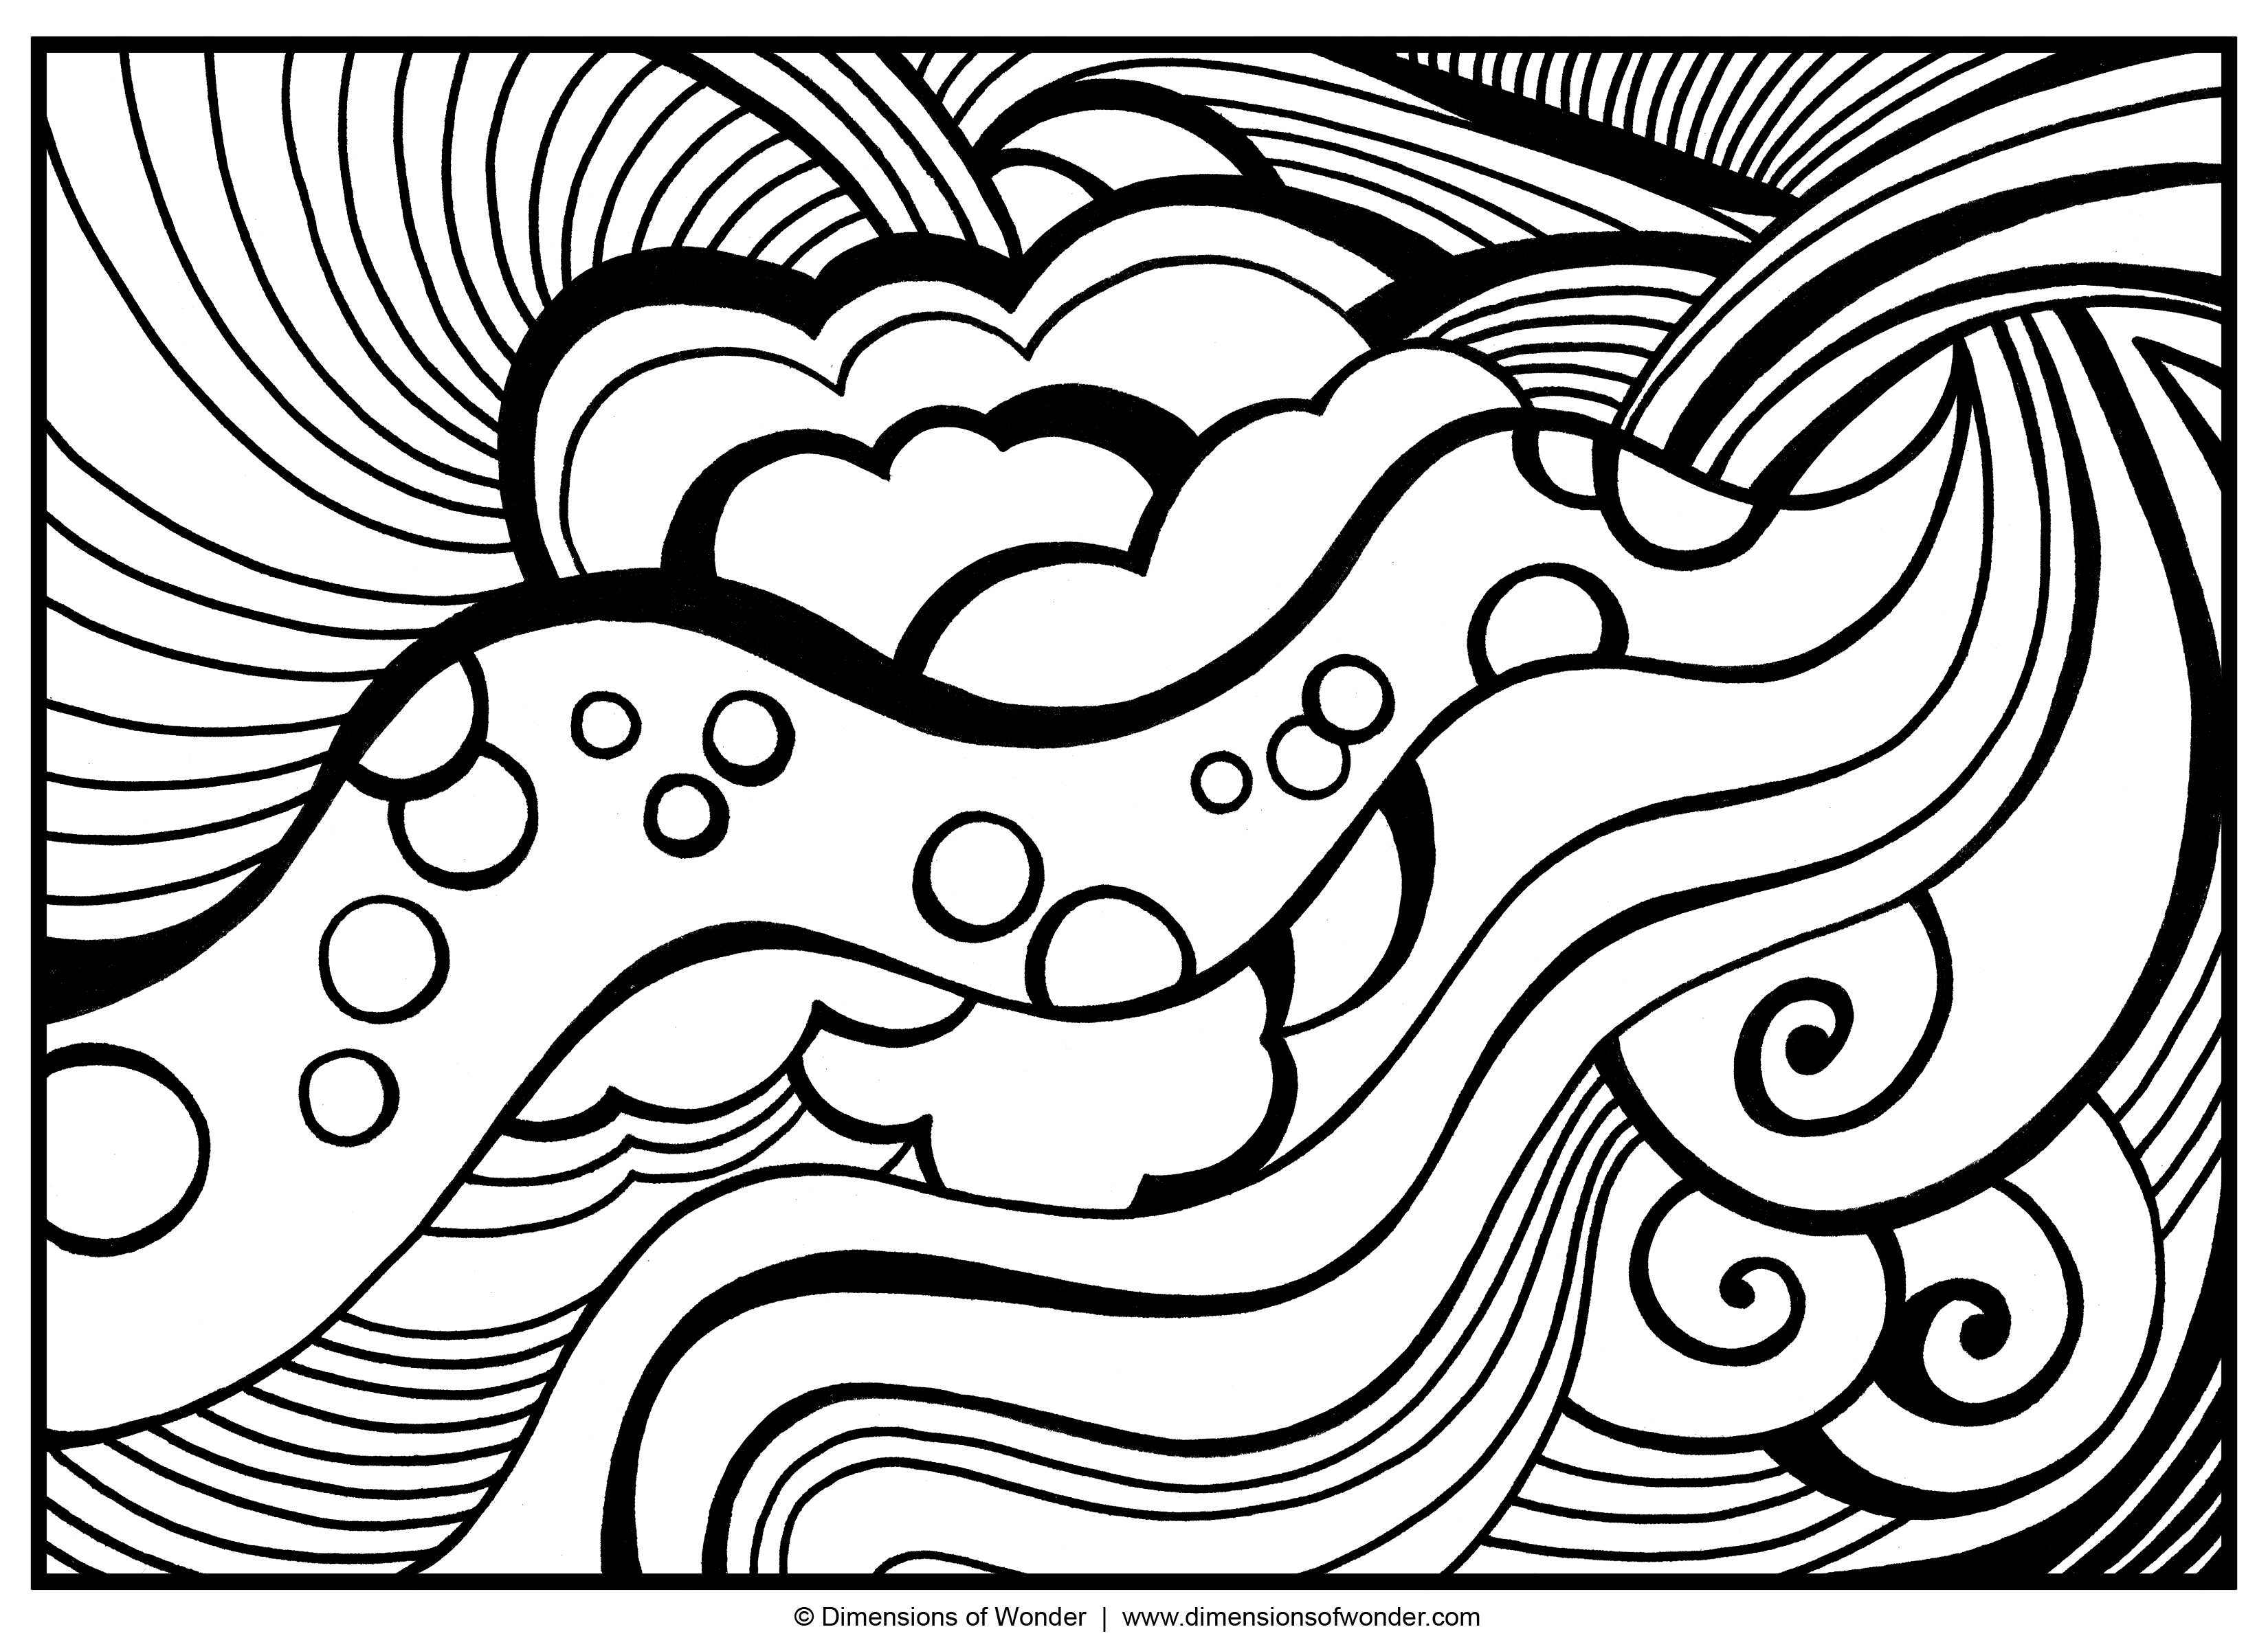 Dr Seuss Coloring Page Free Coloring Pages Download | Xsibe happy ...